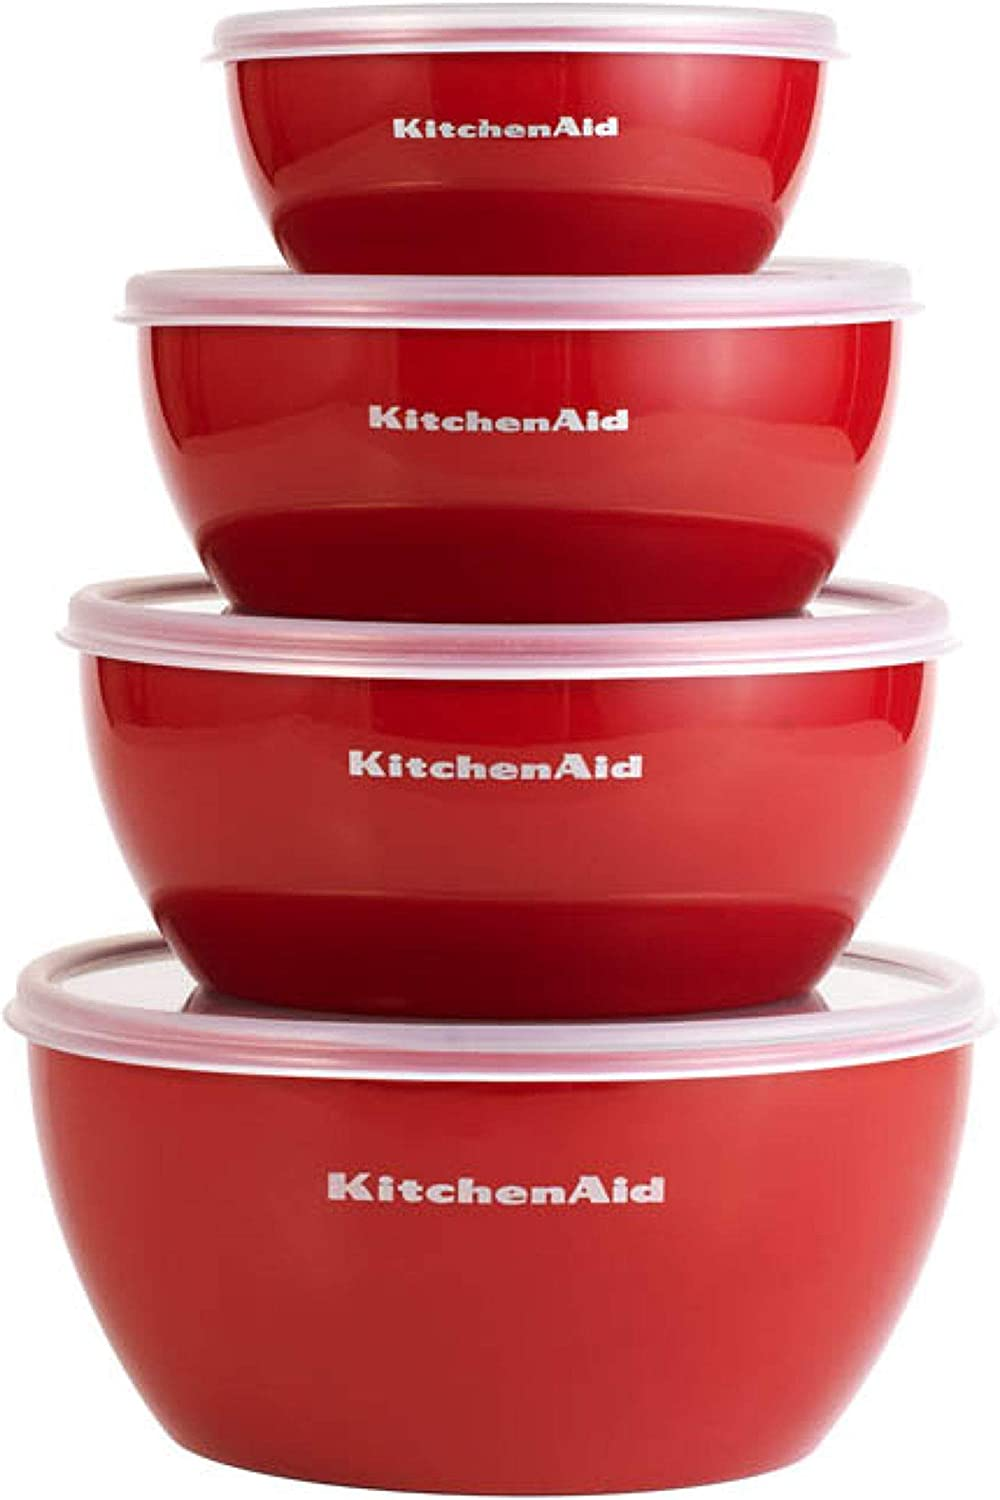 KitchenAid Classic Prep Bowls, Set of 4, Empire Red